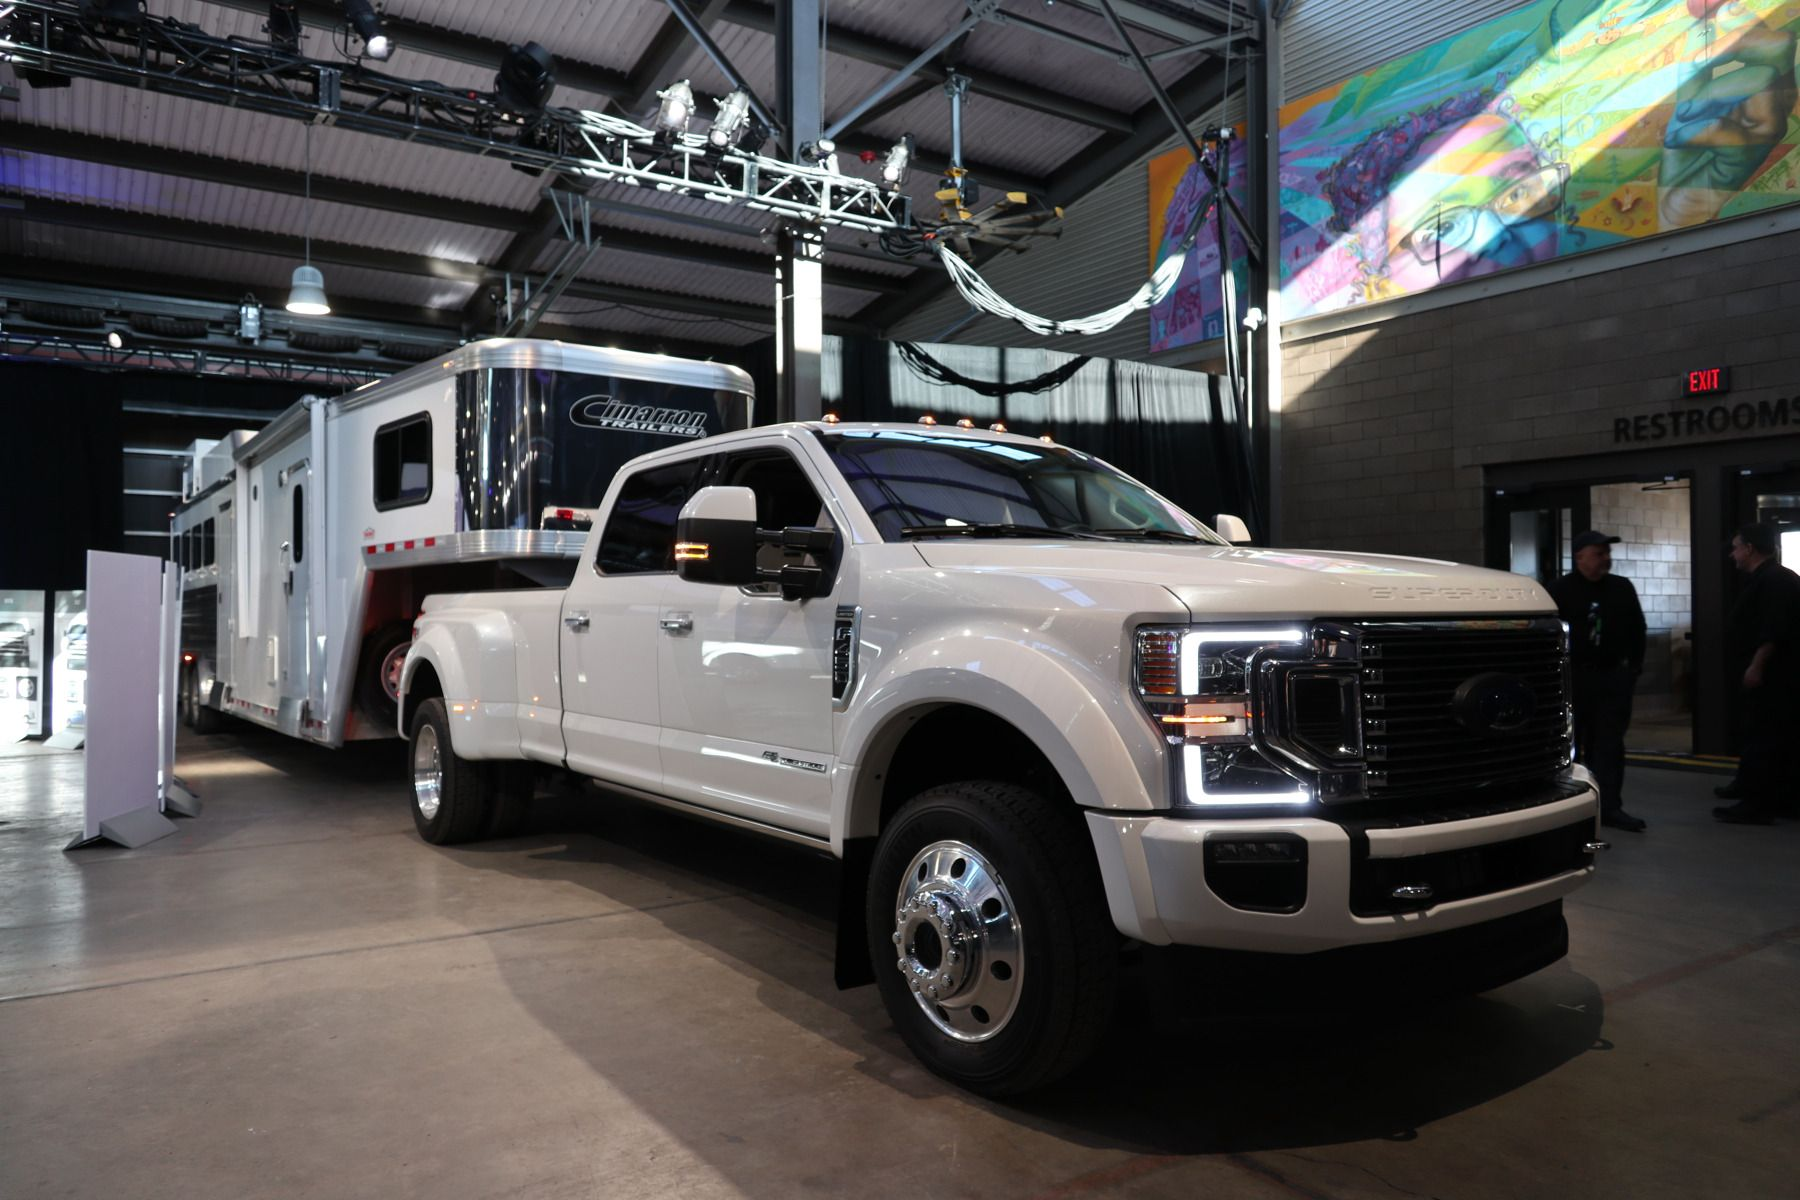 First Look 2020 Ford Super Duty Ford Super Duty Ford Super Duty Trucks Ford F350 Super Duty